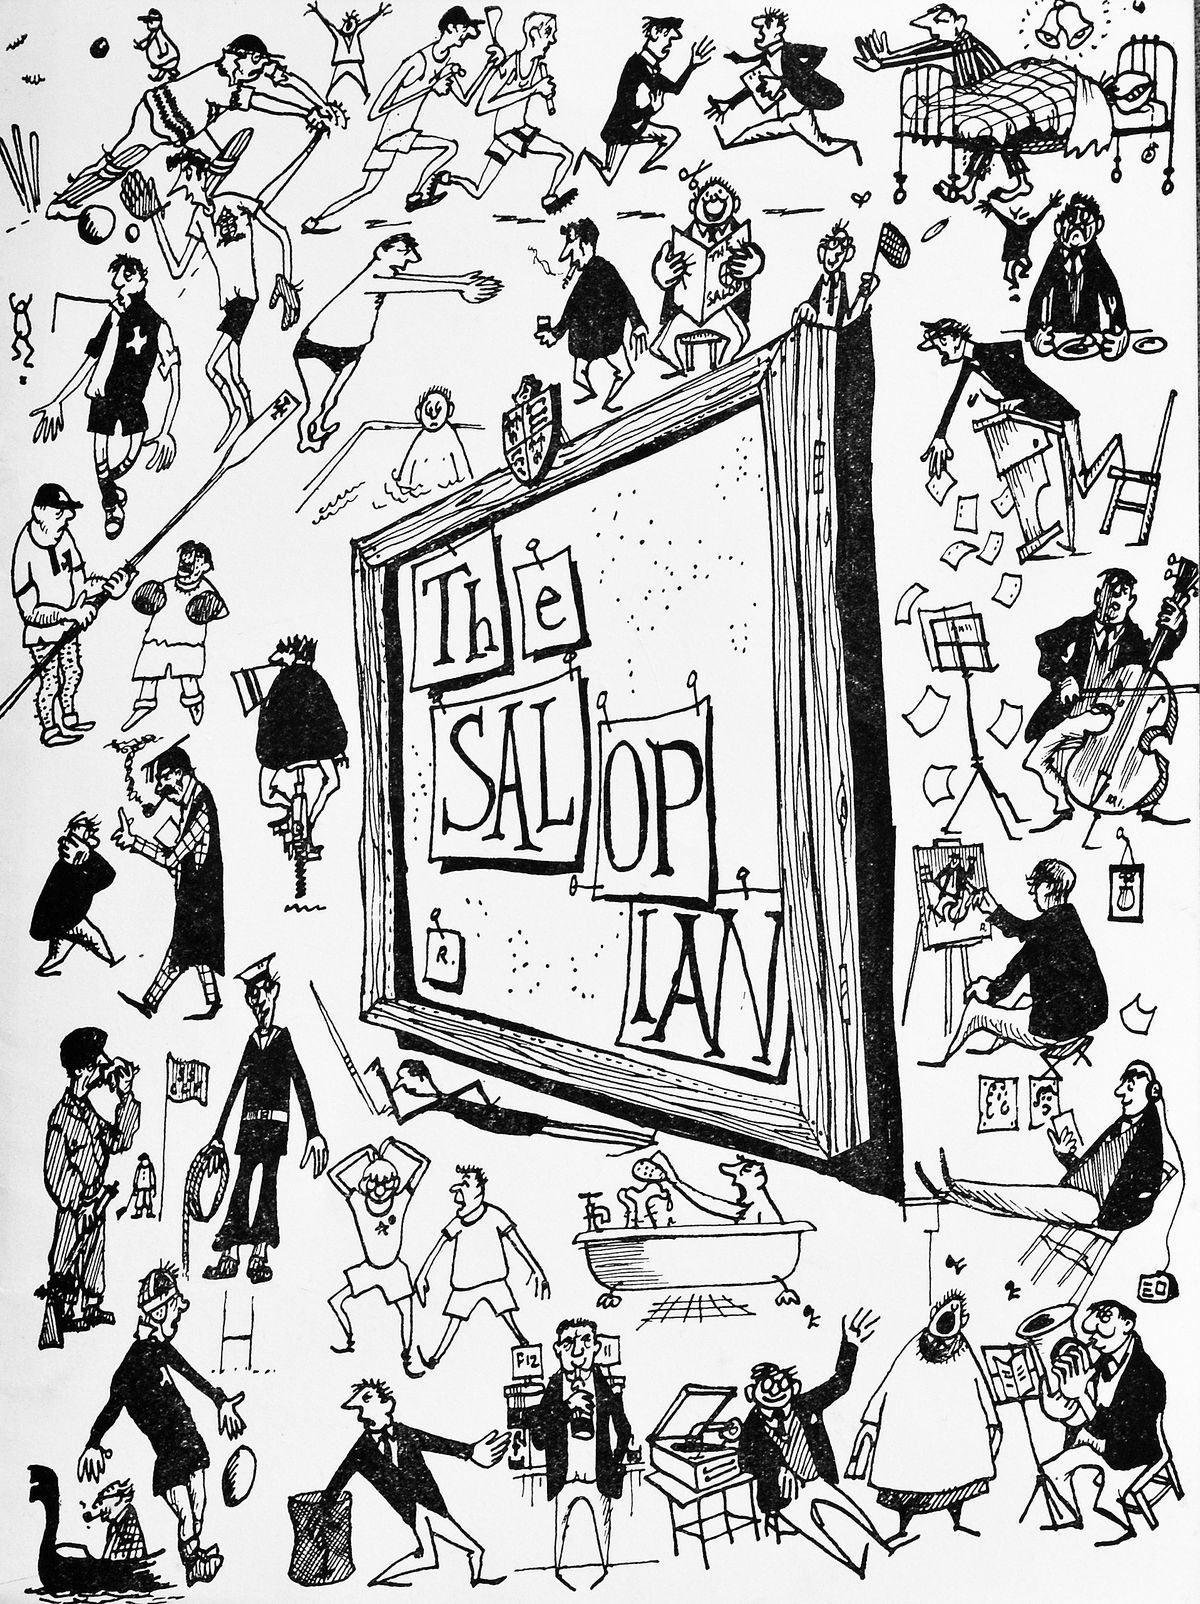 A 1950s issue of The Salopian featuring Willie Rushton cartoons. Picture courtesy of Laurence Le Quesne.